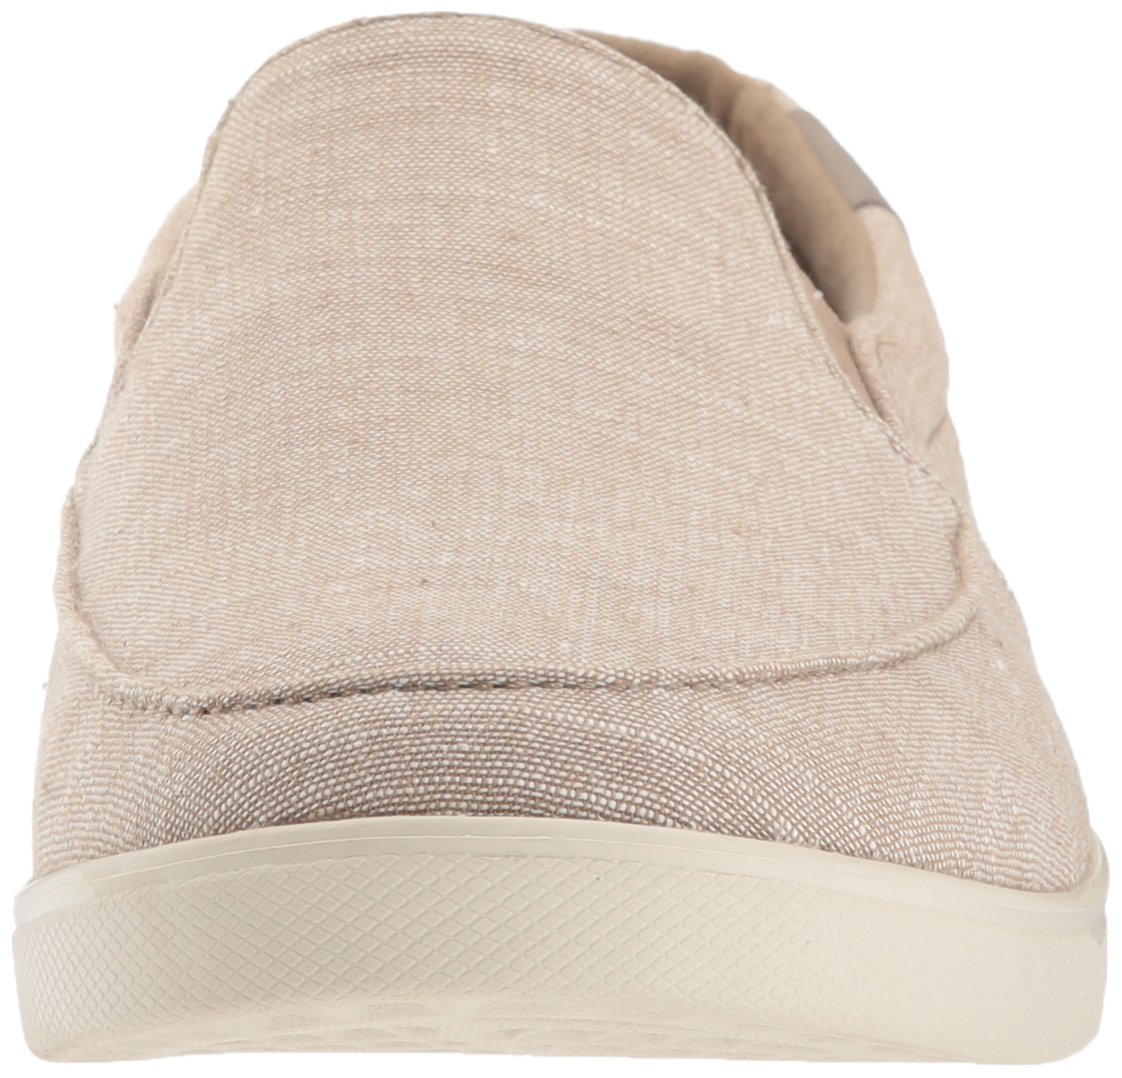 Crocs Women's Citilane Low Canvas Slip-On B071WCWT5J 9 B(M) US|Khaki